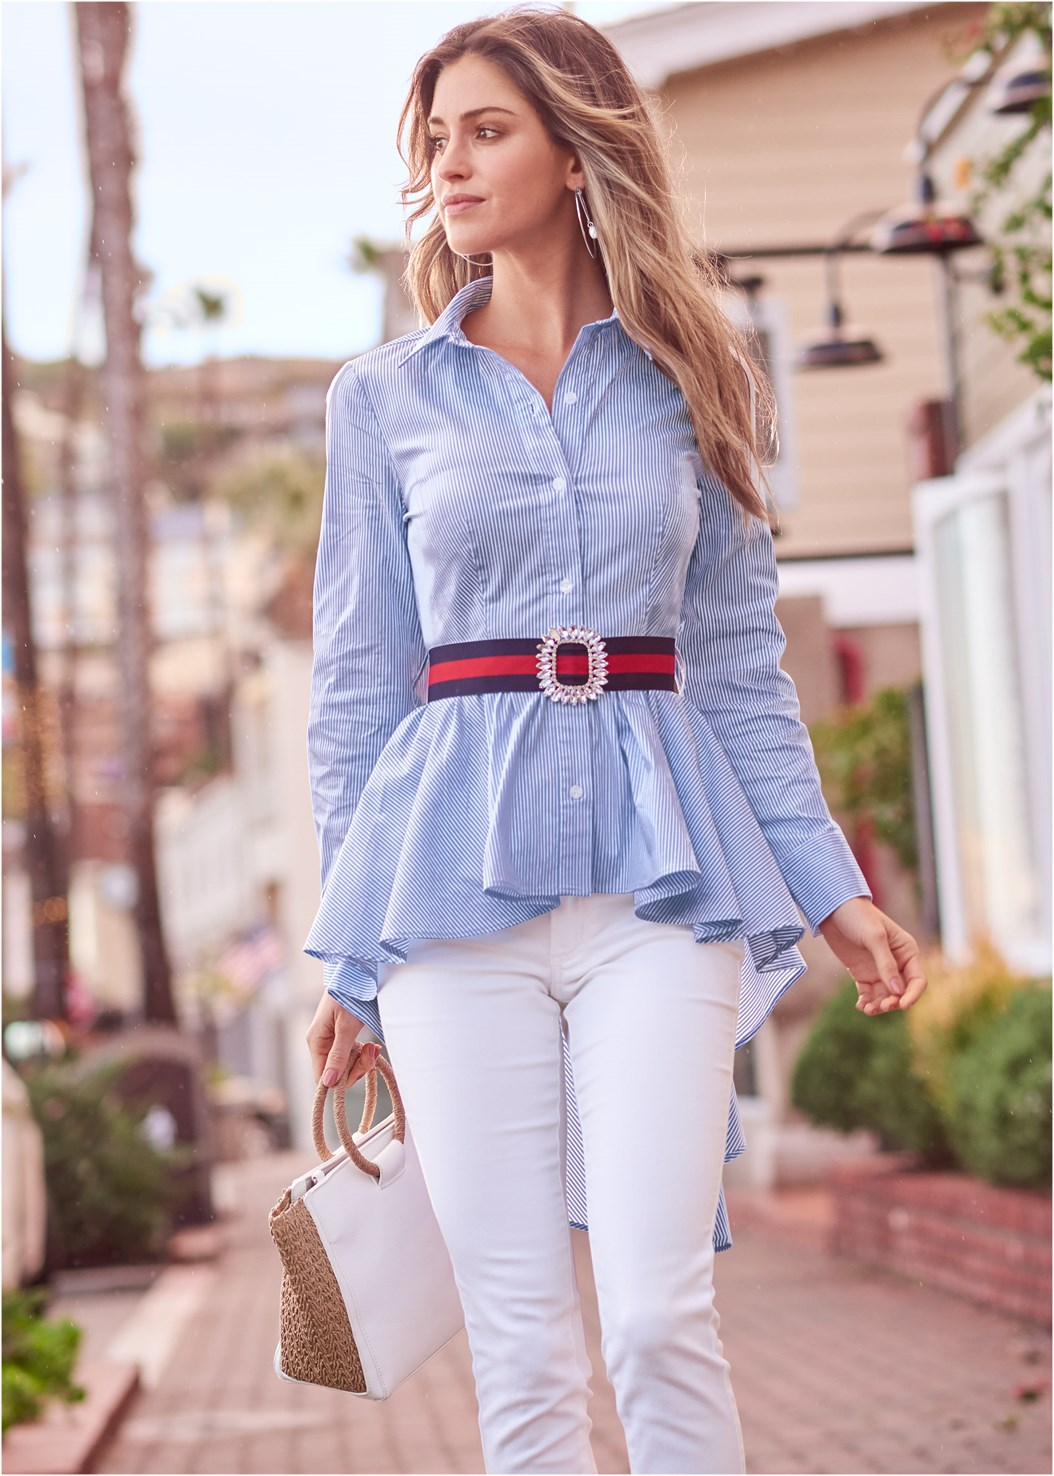 High Low Pinstripe Blouse,Mid Rise Color Skinny Jeans,Mid Rise Slimming Stretch Jeggings,Balconette Bra/Panty Set,Strappy Heels,Raffia Detail Bag